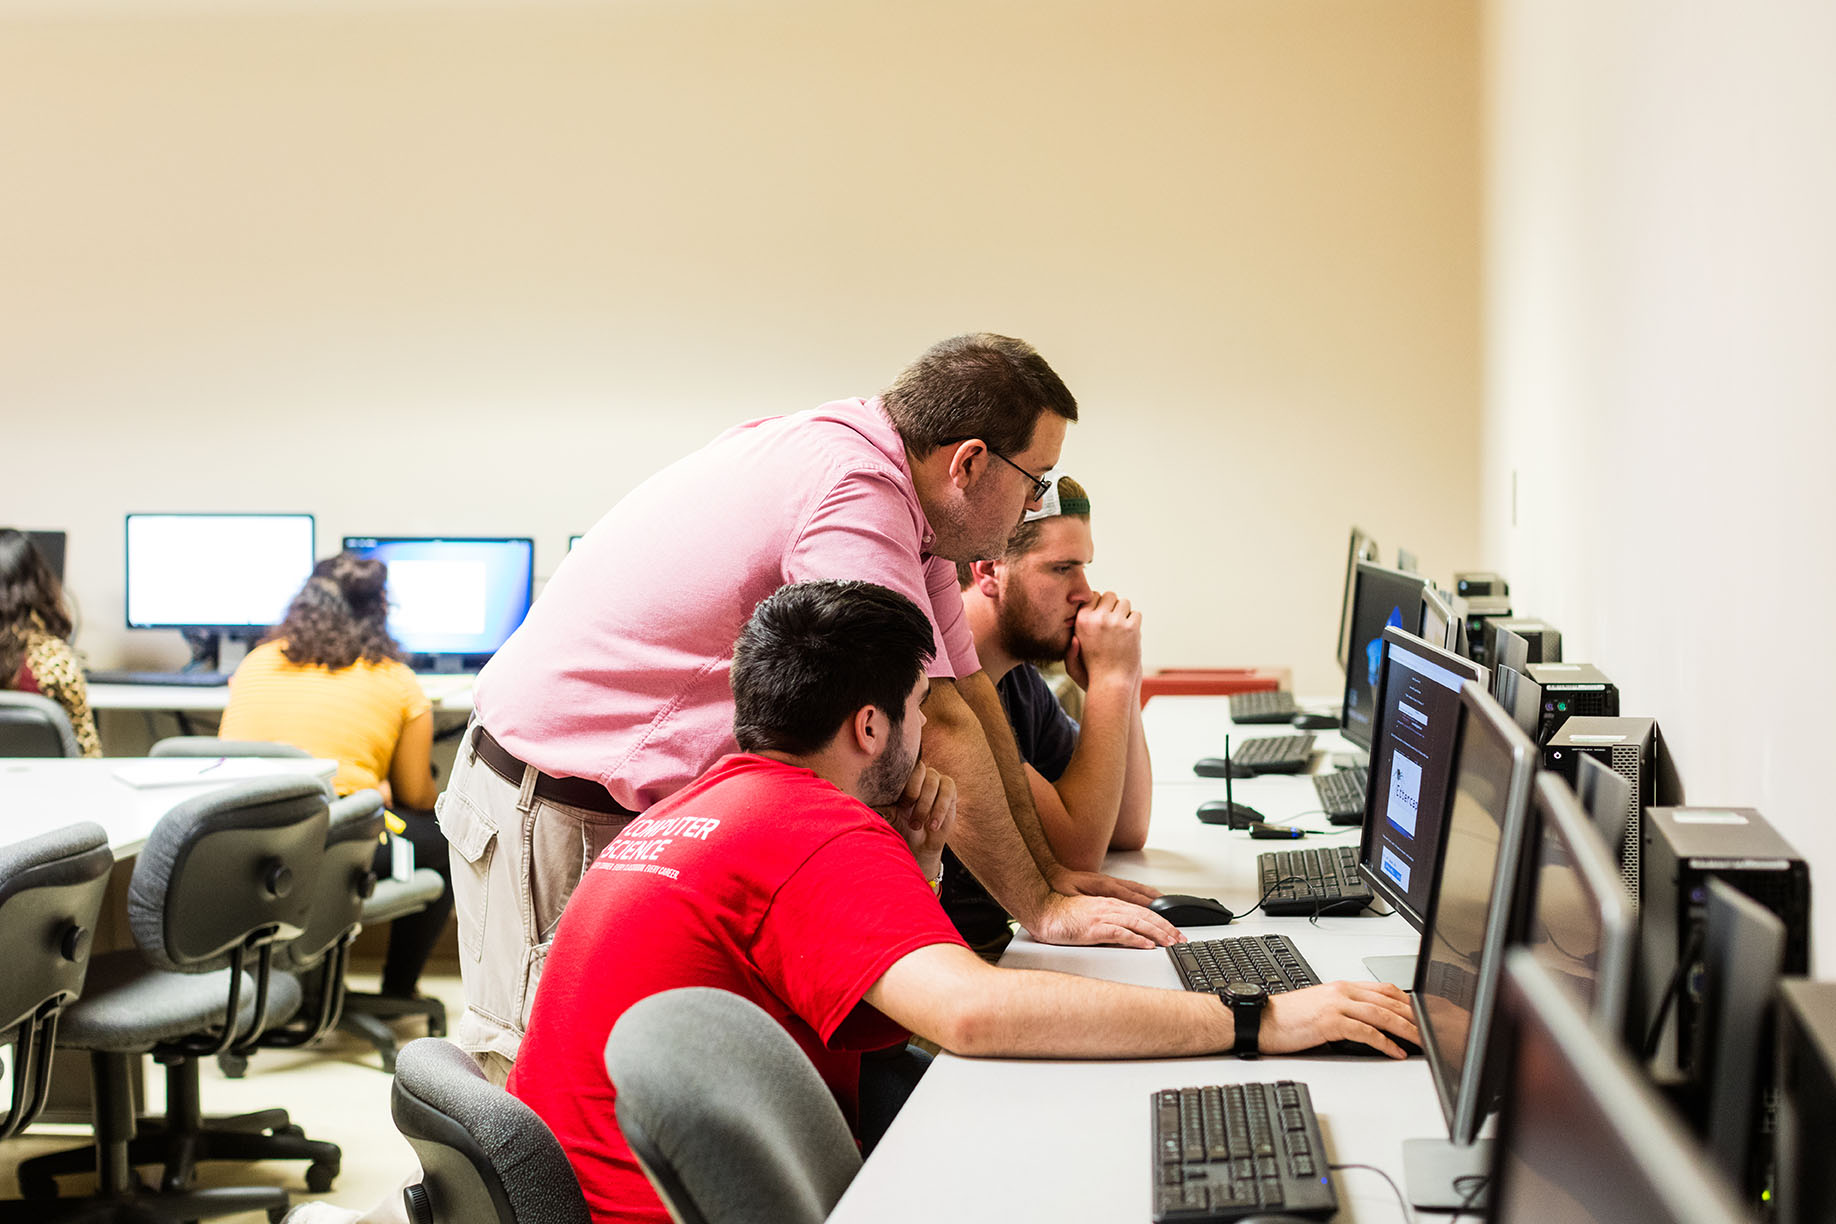 cybersecurity students work with a faculty to learn programming fundamentals